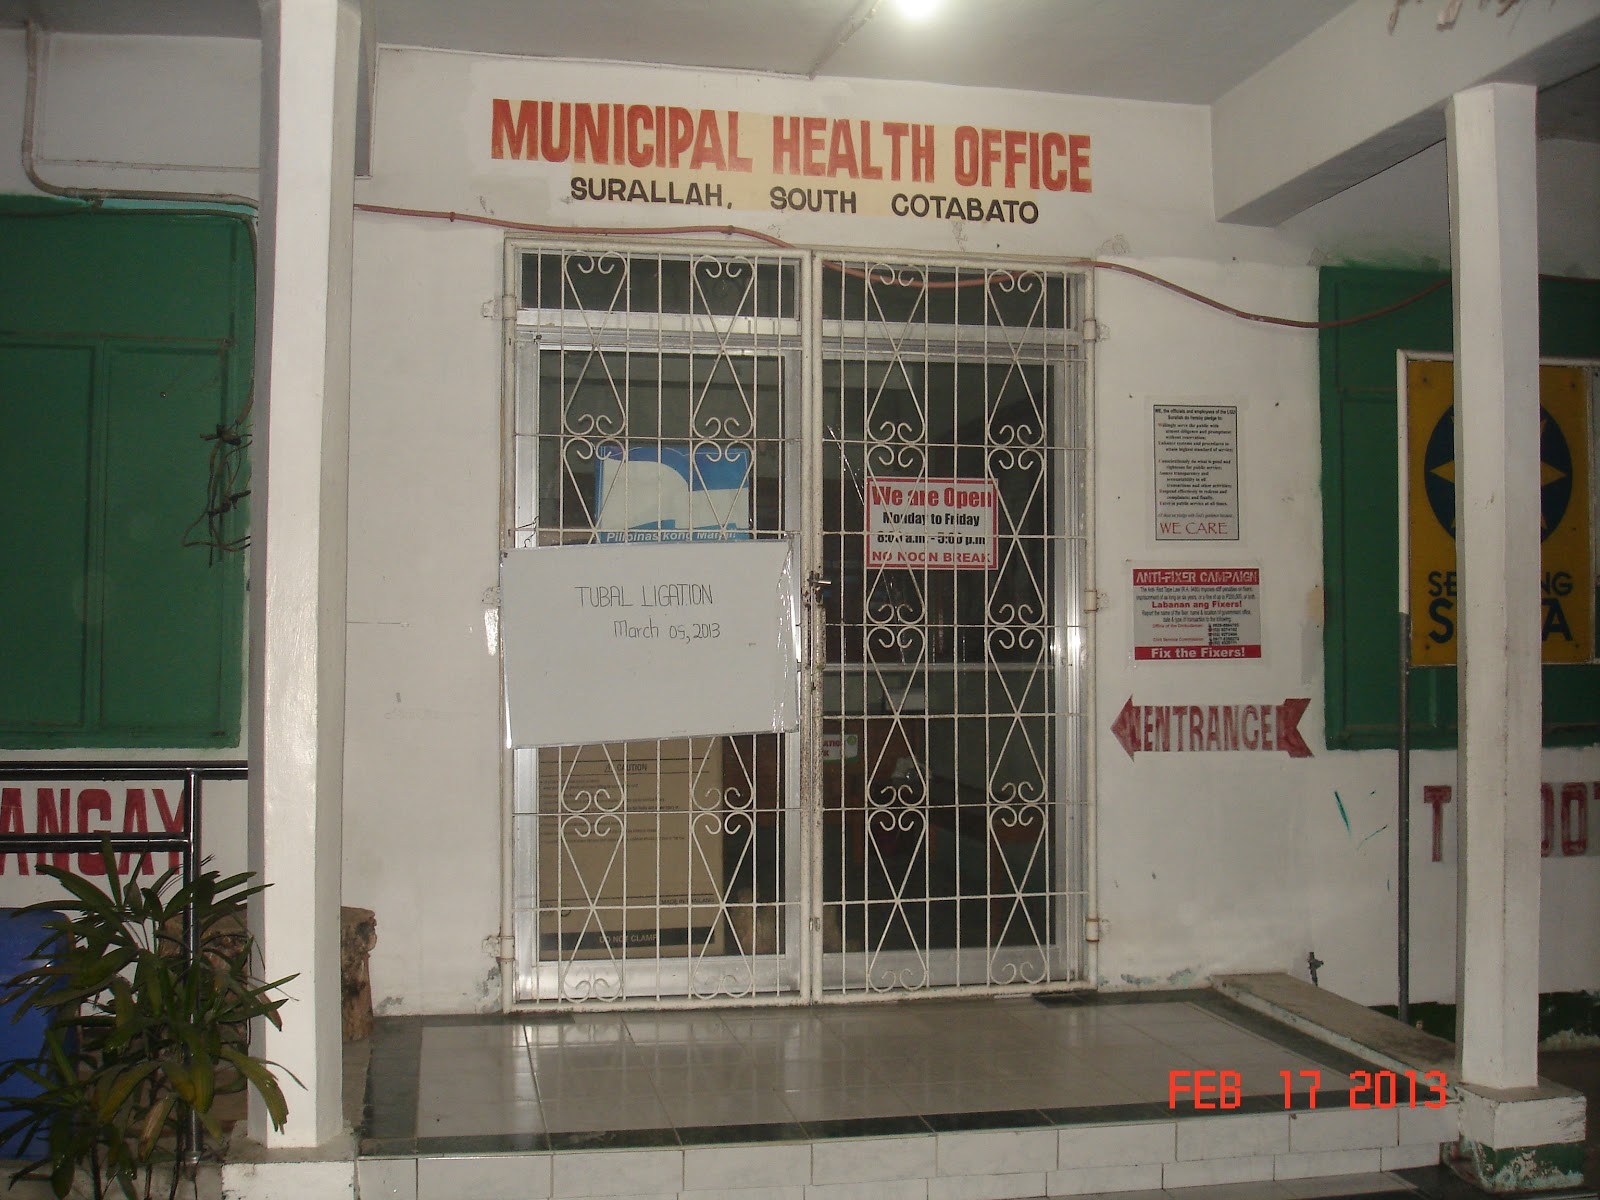 Barangay health center informayion system